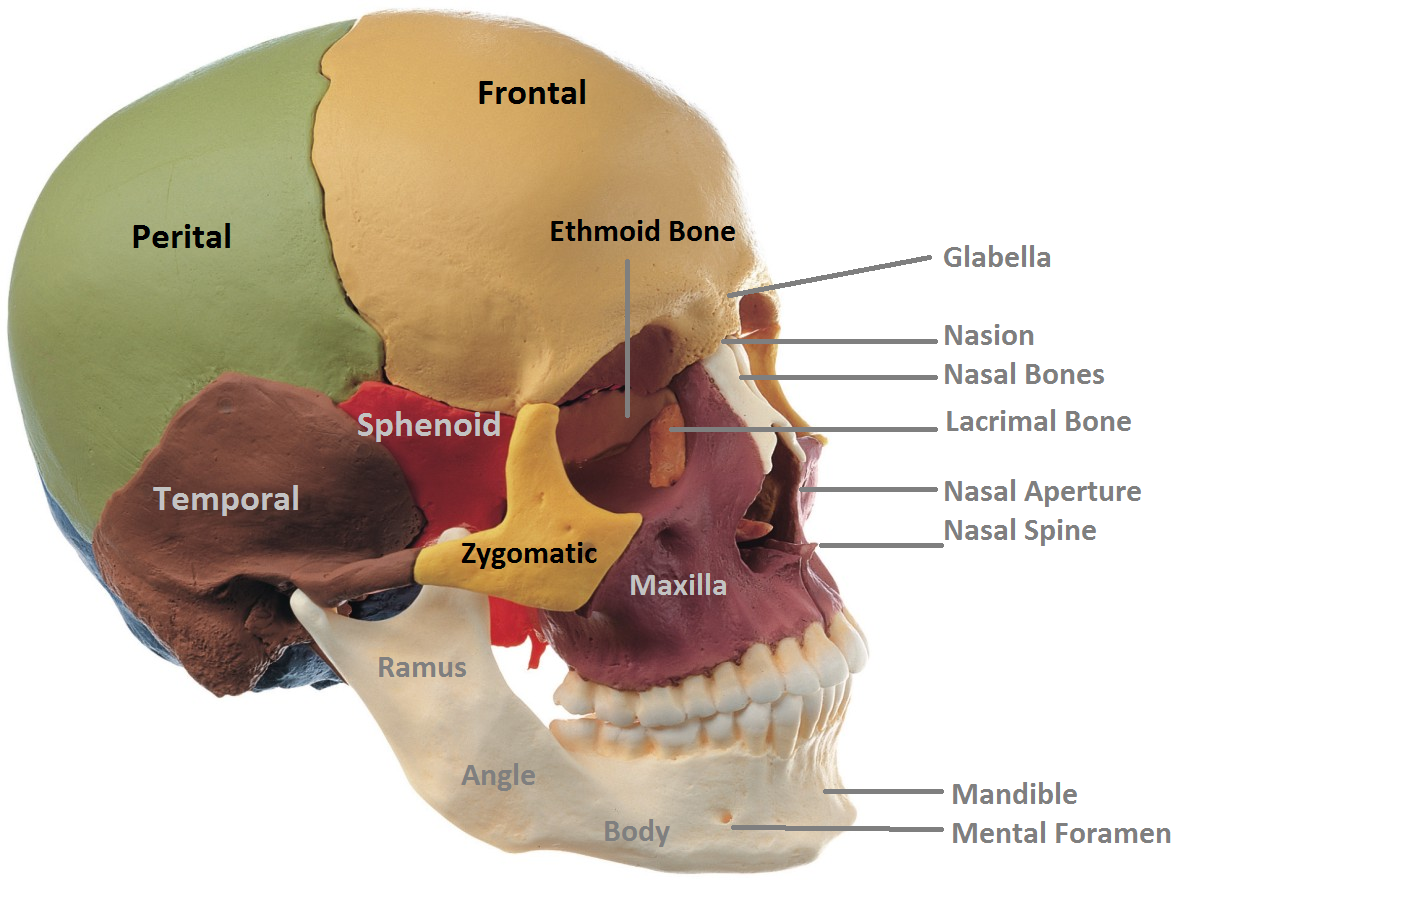 Anatomy Made Easy : Anterior View of Skull